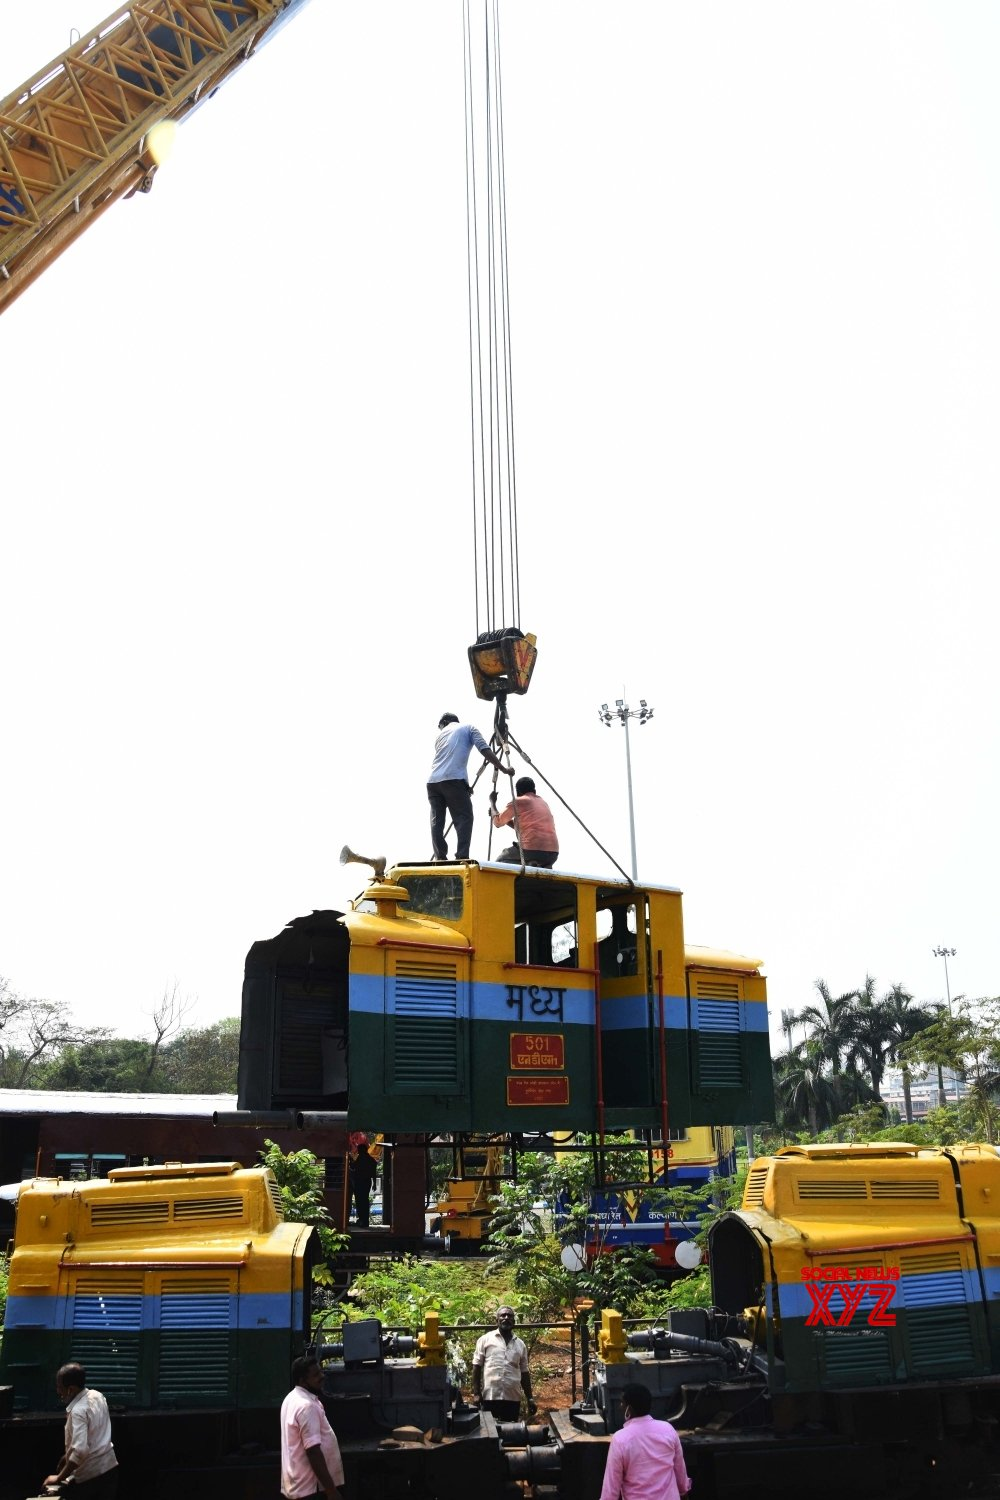 Mumbai: Workers assemble an Indian railway locomotive which was in service from 1956 to 2002 #Gallery